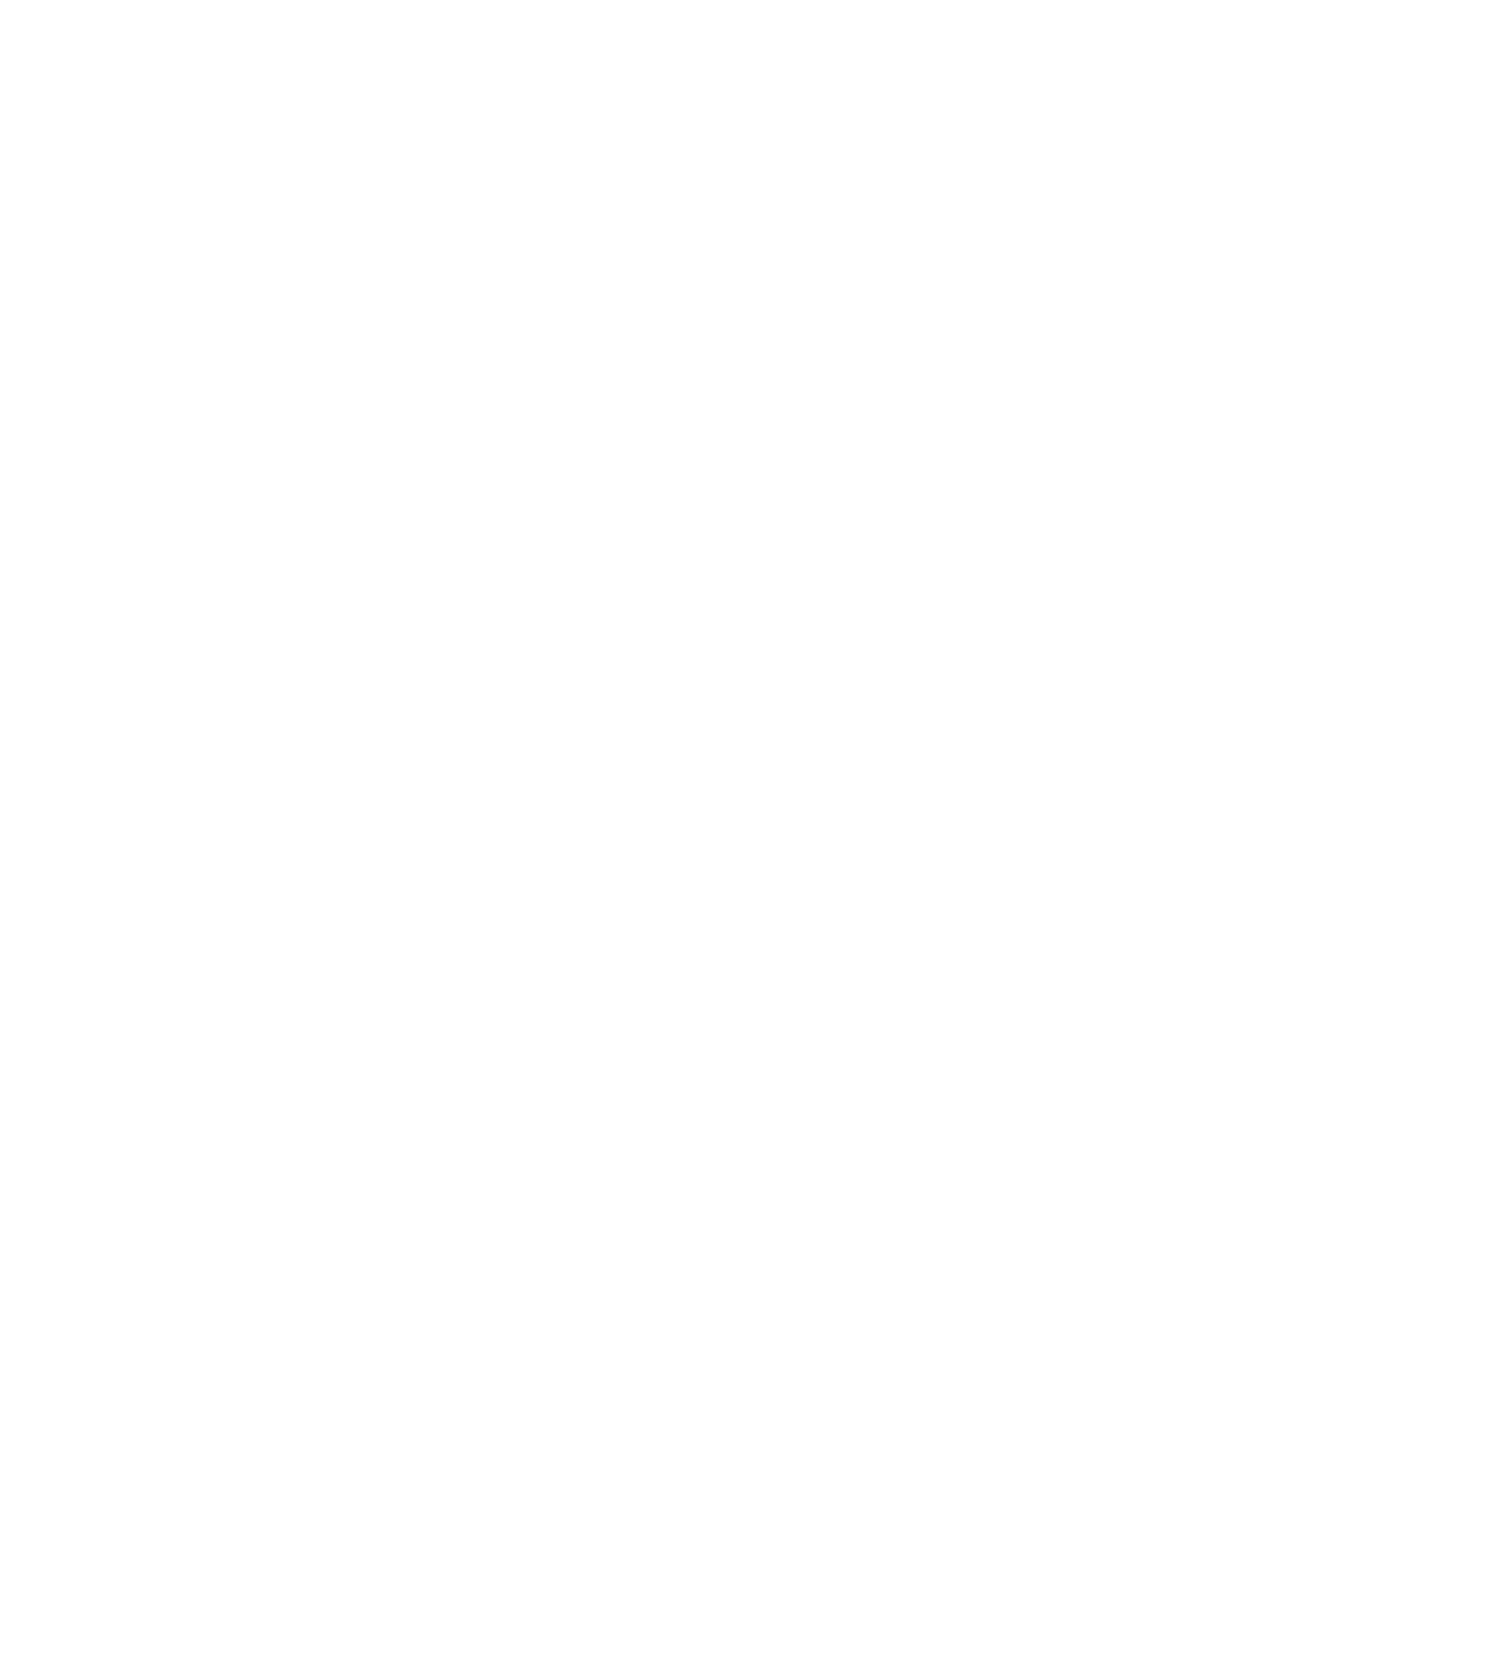 Dunlap Design Group, LLC | Michigan Interior Design and Decorating